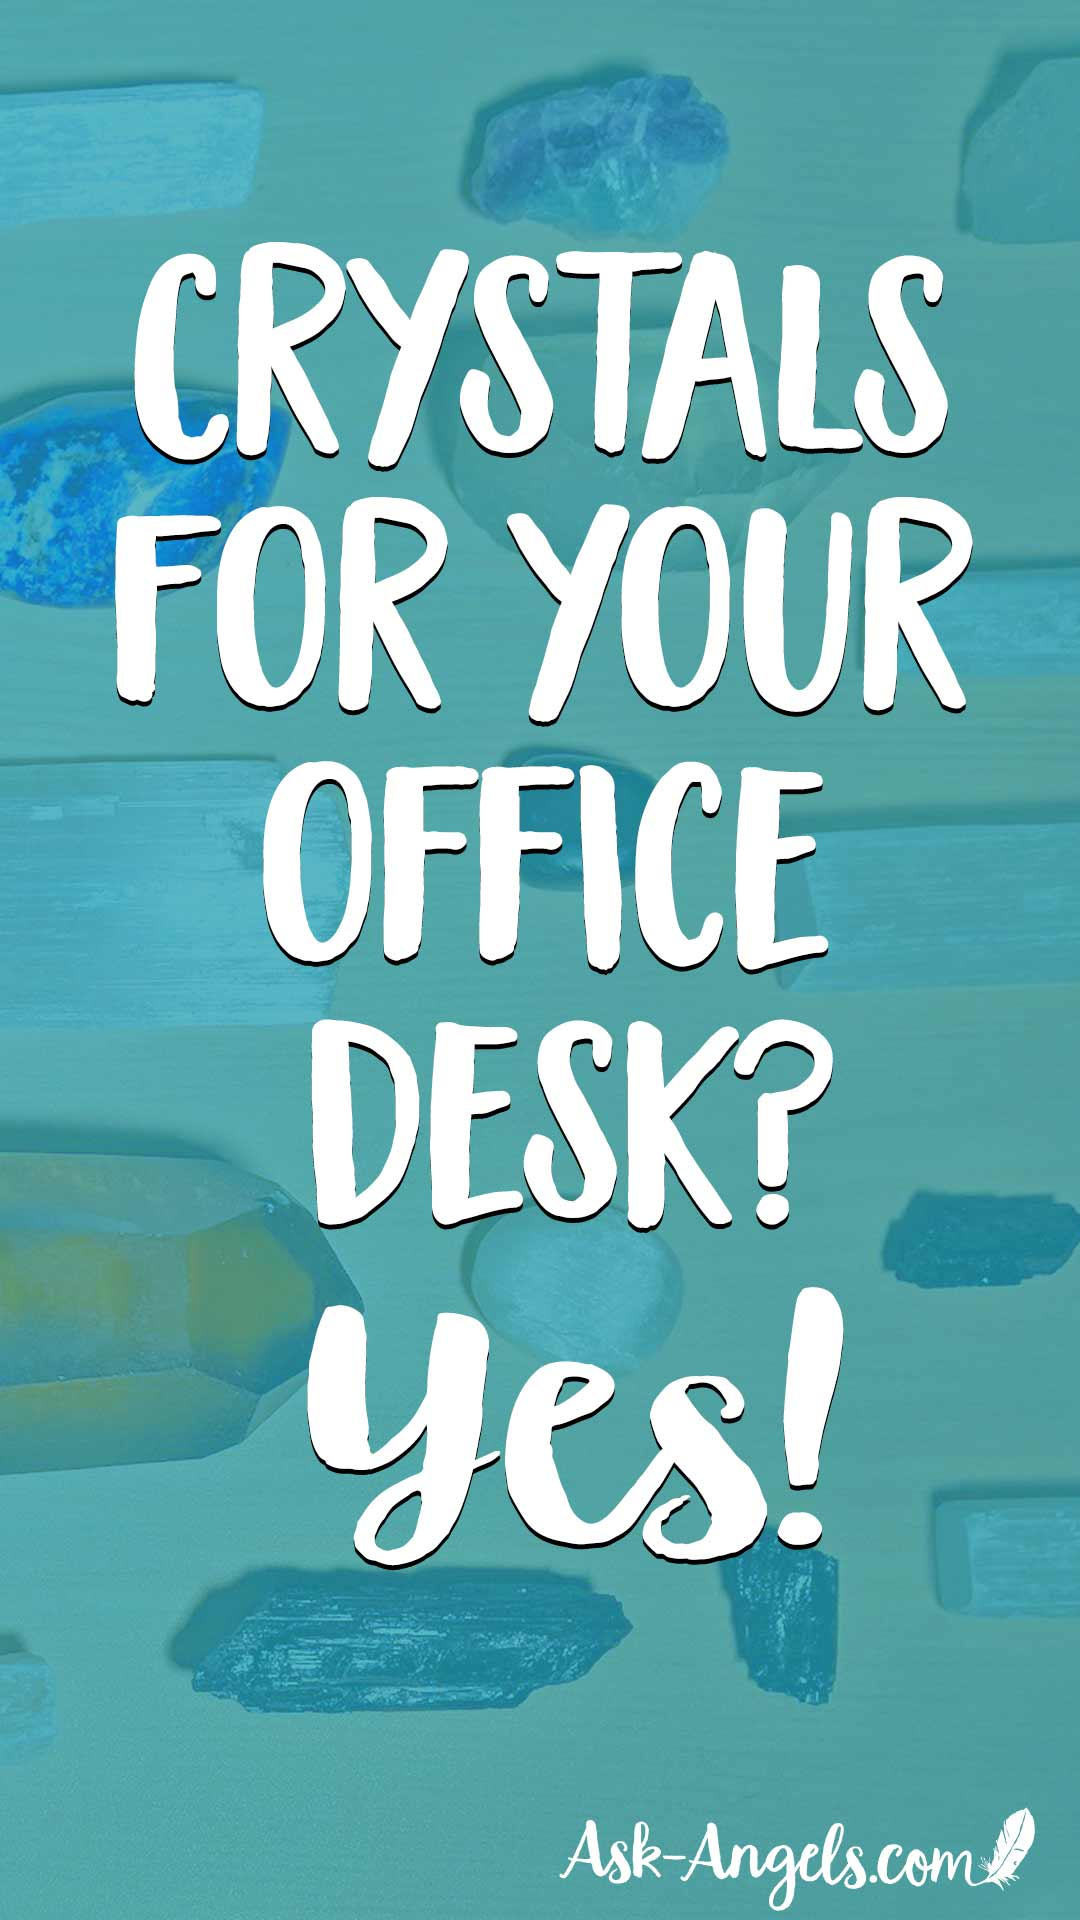 Keeping crystals on your office desk is the perfect way to help create a harmonious work atmosphere and support abundance, productiity, clarity and more! Learn my top picks here...